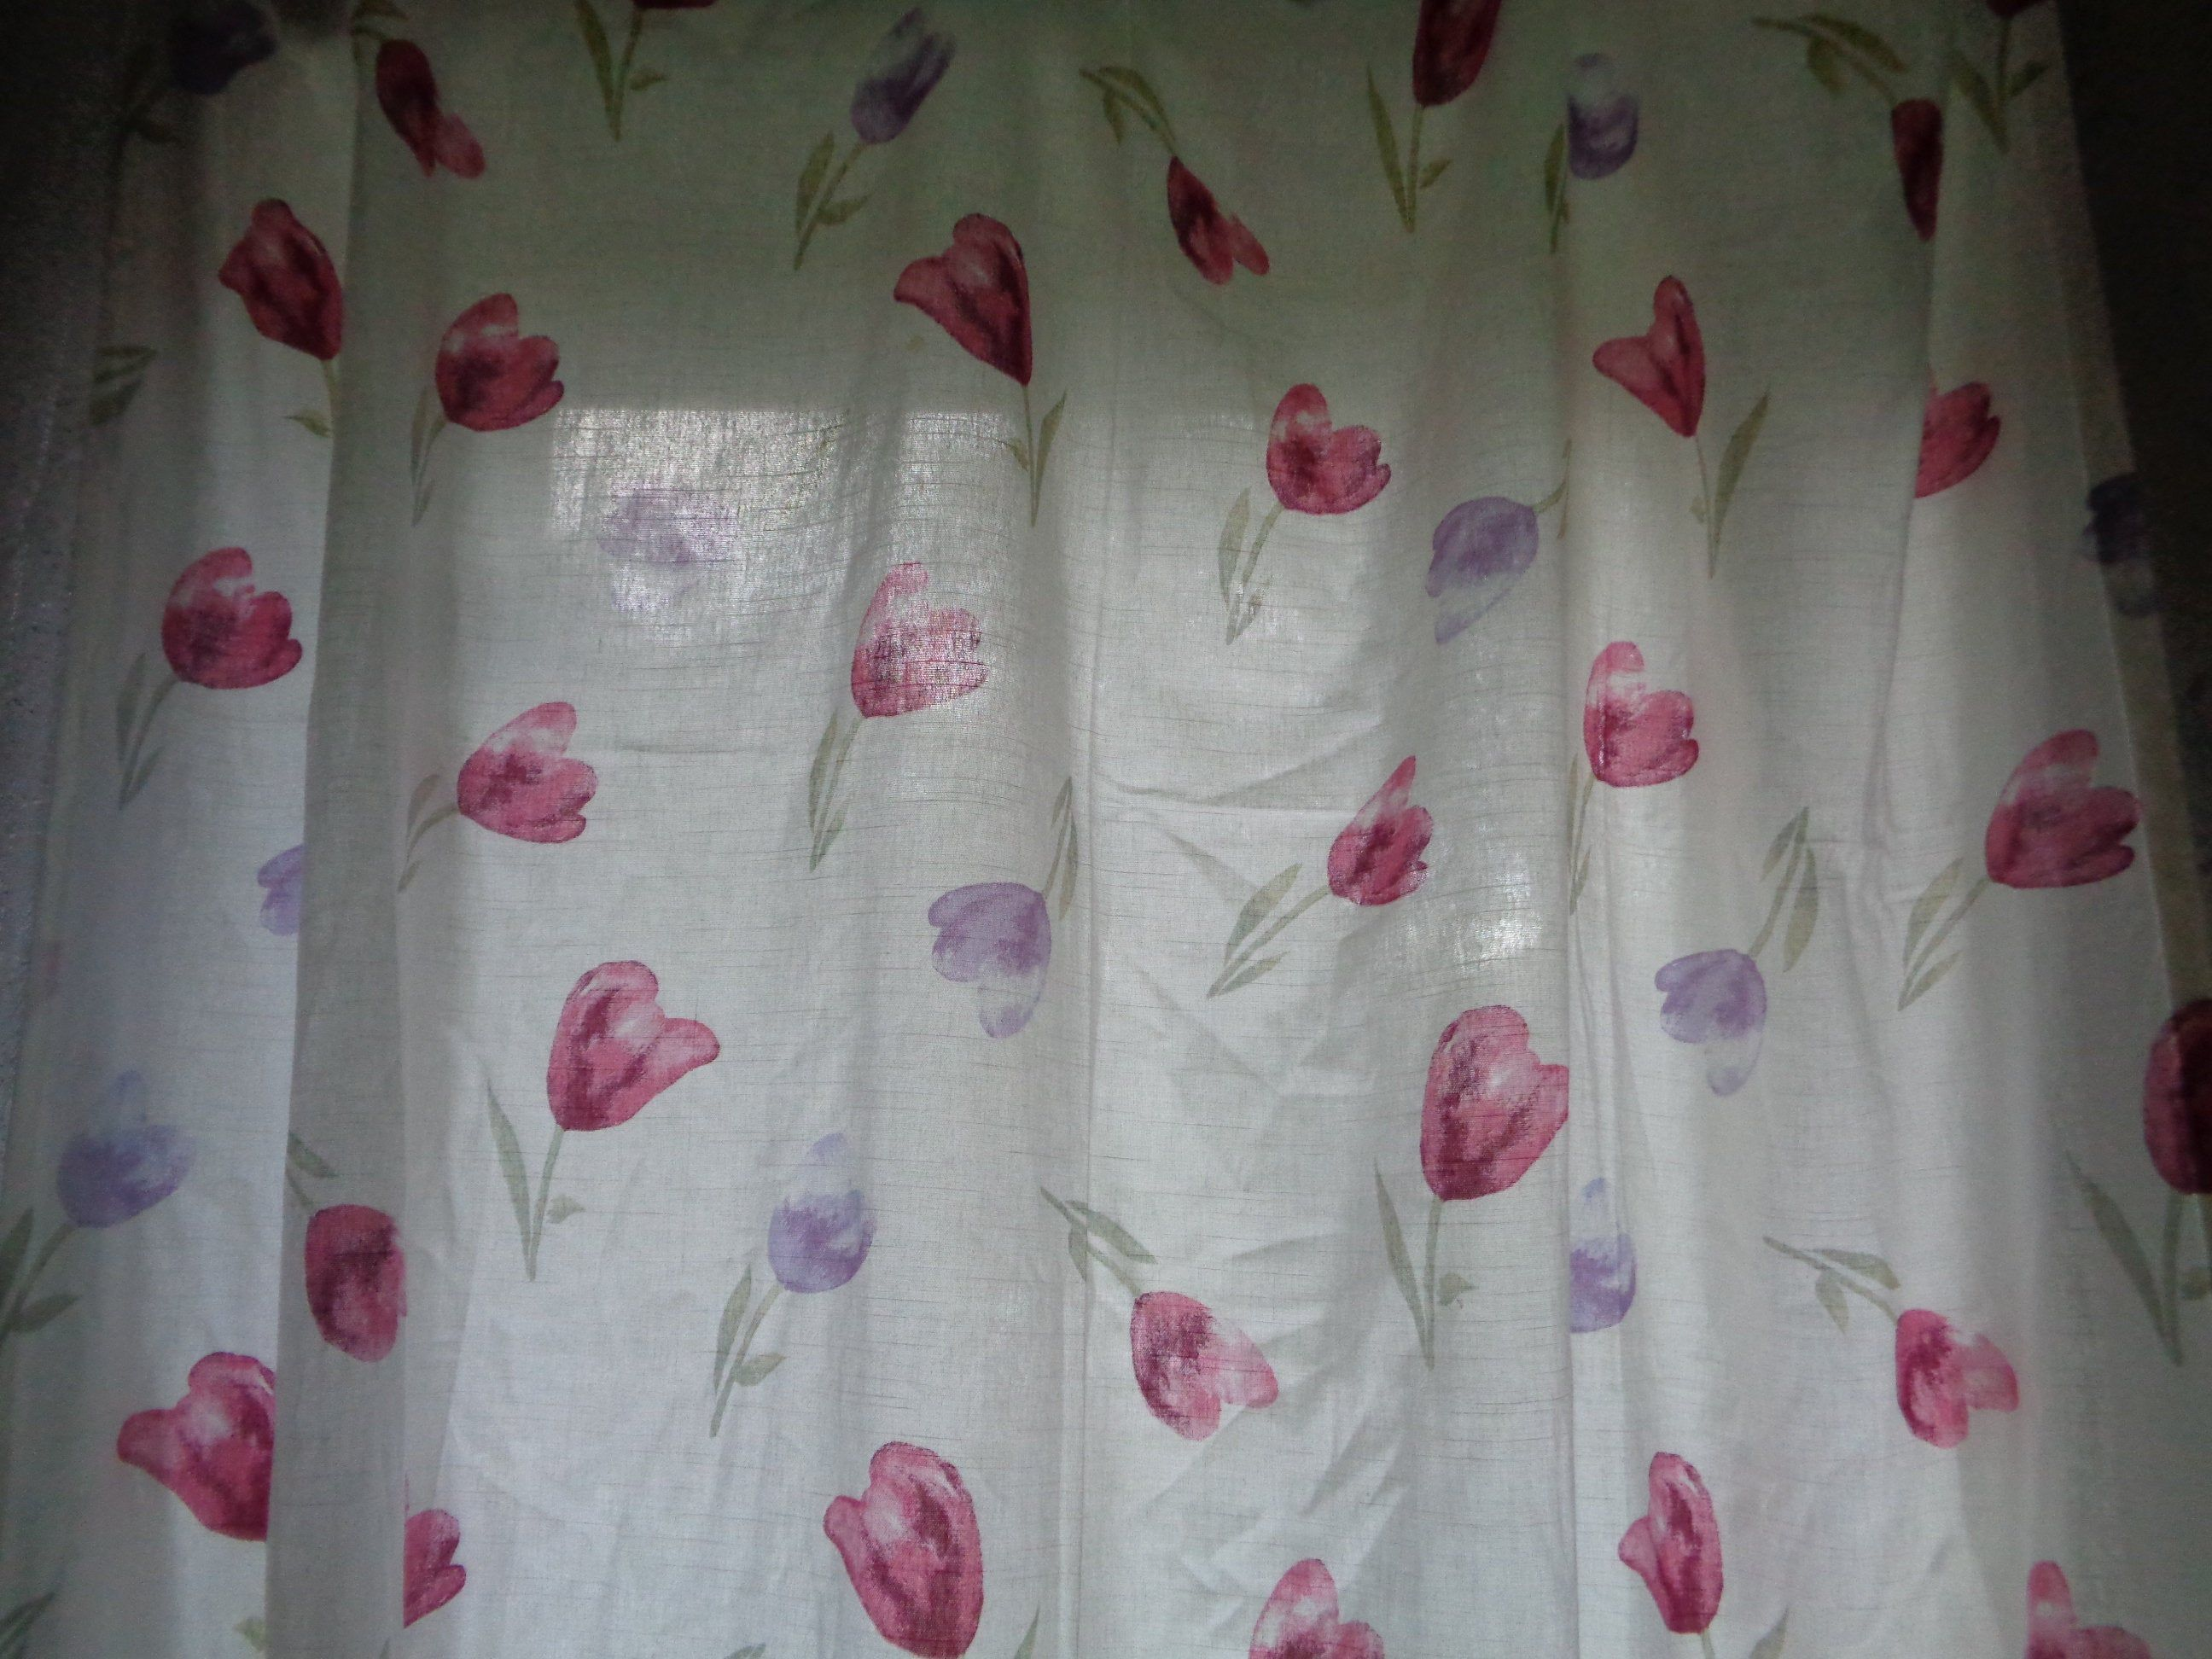 Reserved Vintage Curtain Panel L84x W57 Floral Etsy In 2020 Vintage Curtains Panel Curtains Floral Curtains